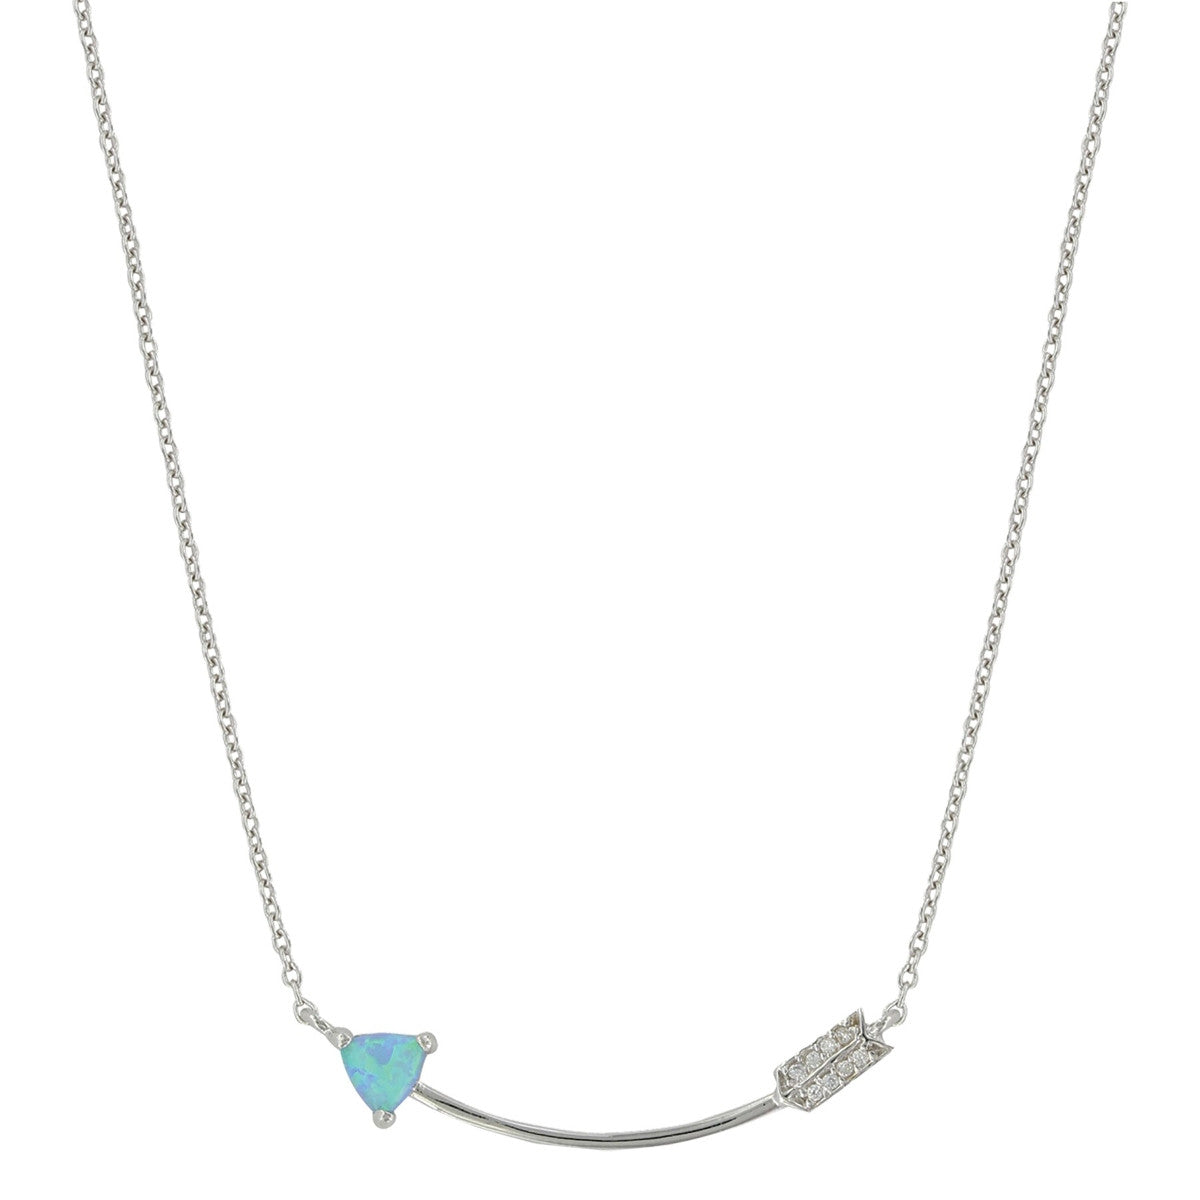 Montana Silversmiths My Direction Arrow Necklace